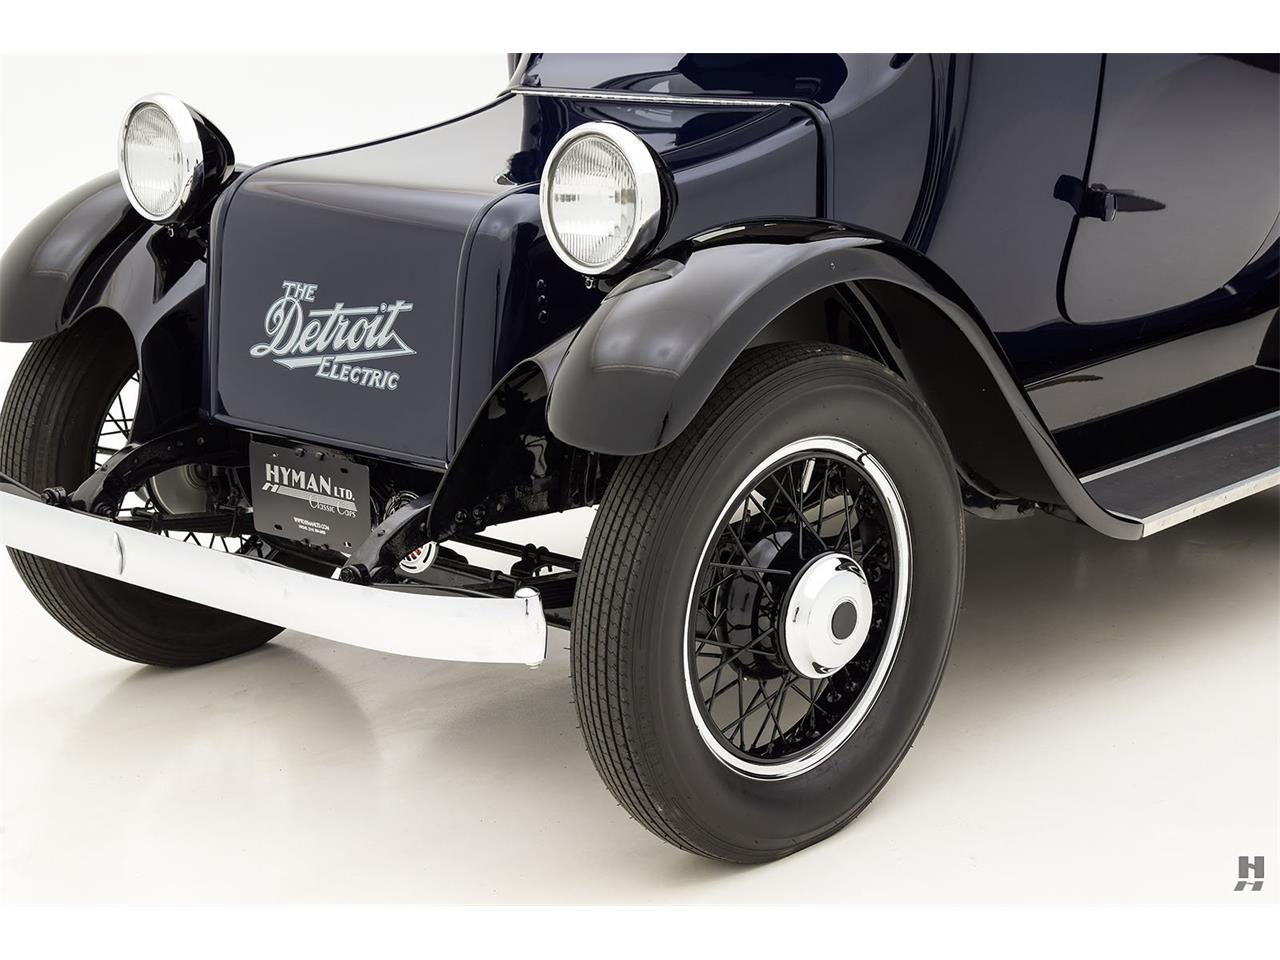 Large Picture of 1931 Detroit Electric Model 97 located in Missouri - $99,500.00 - L0G2